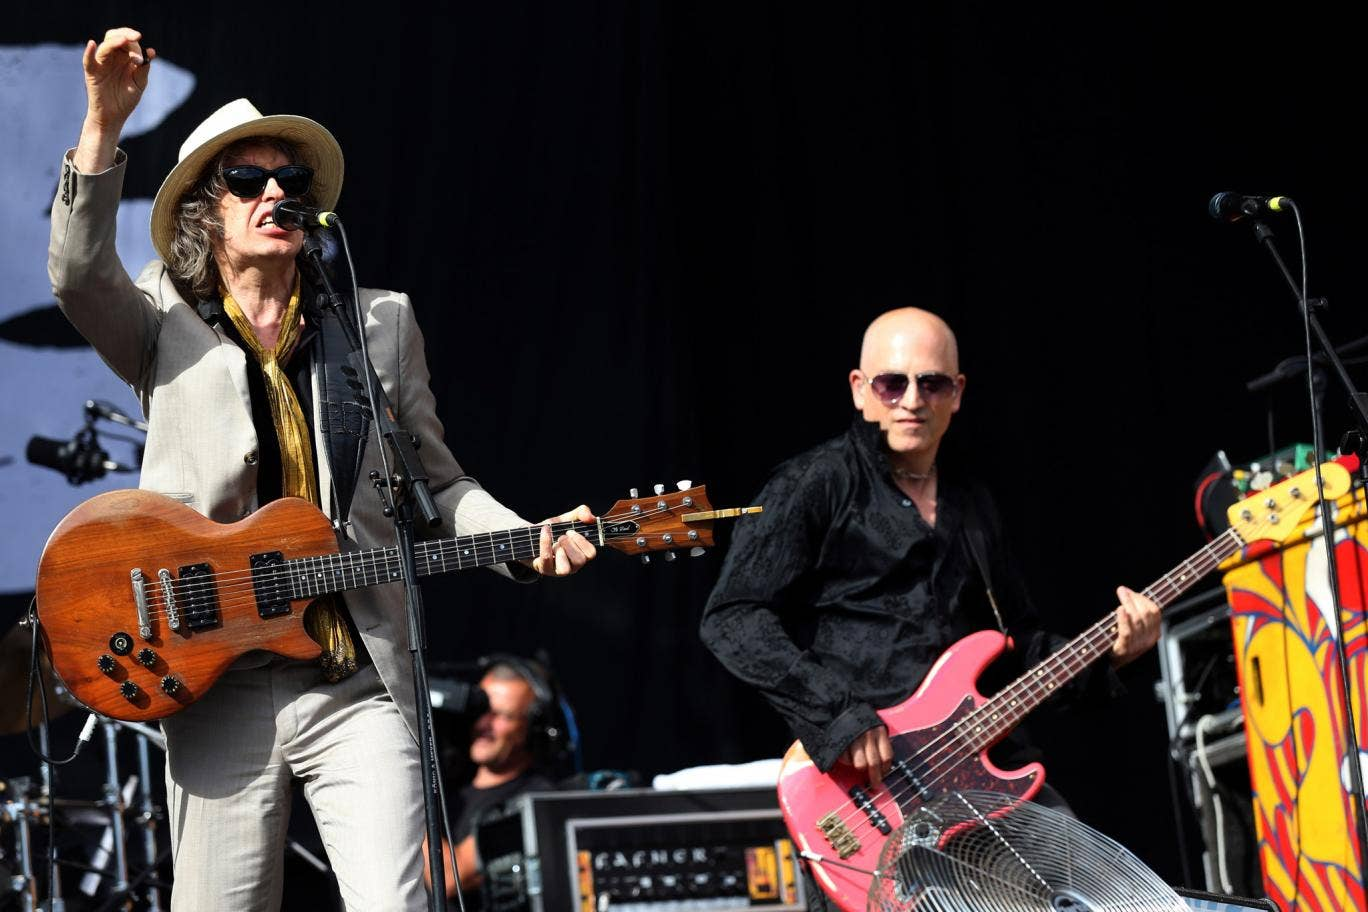 Mike Scott, singer of British band 'The Waterboys' and violinist Steve Wickham (L) perform on stage